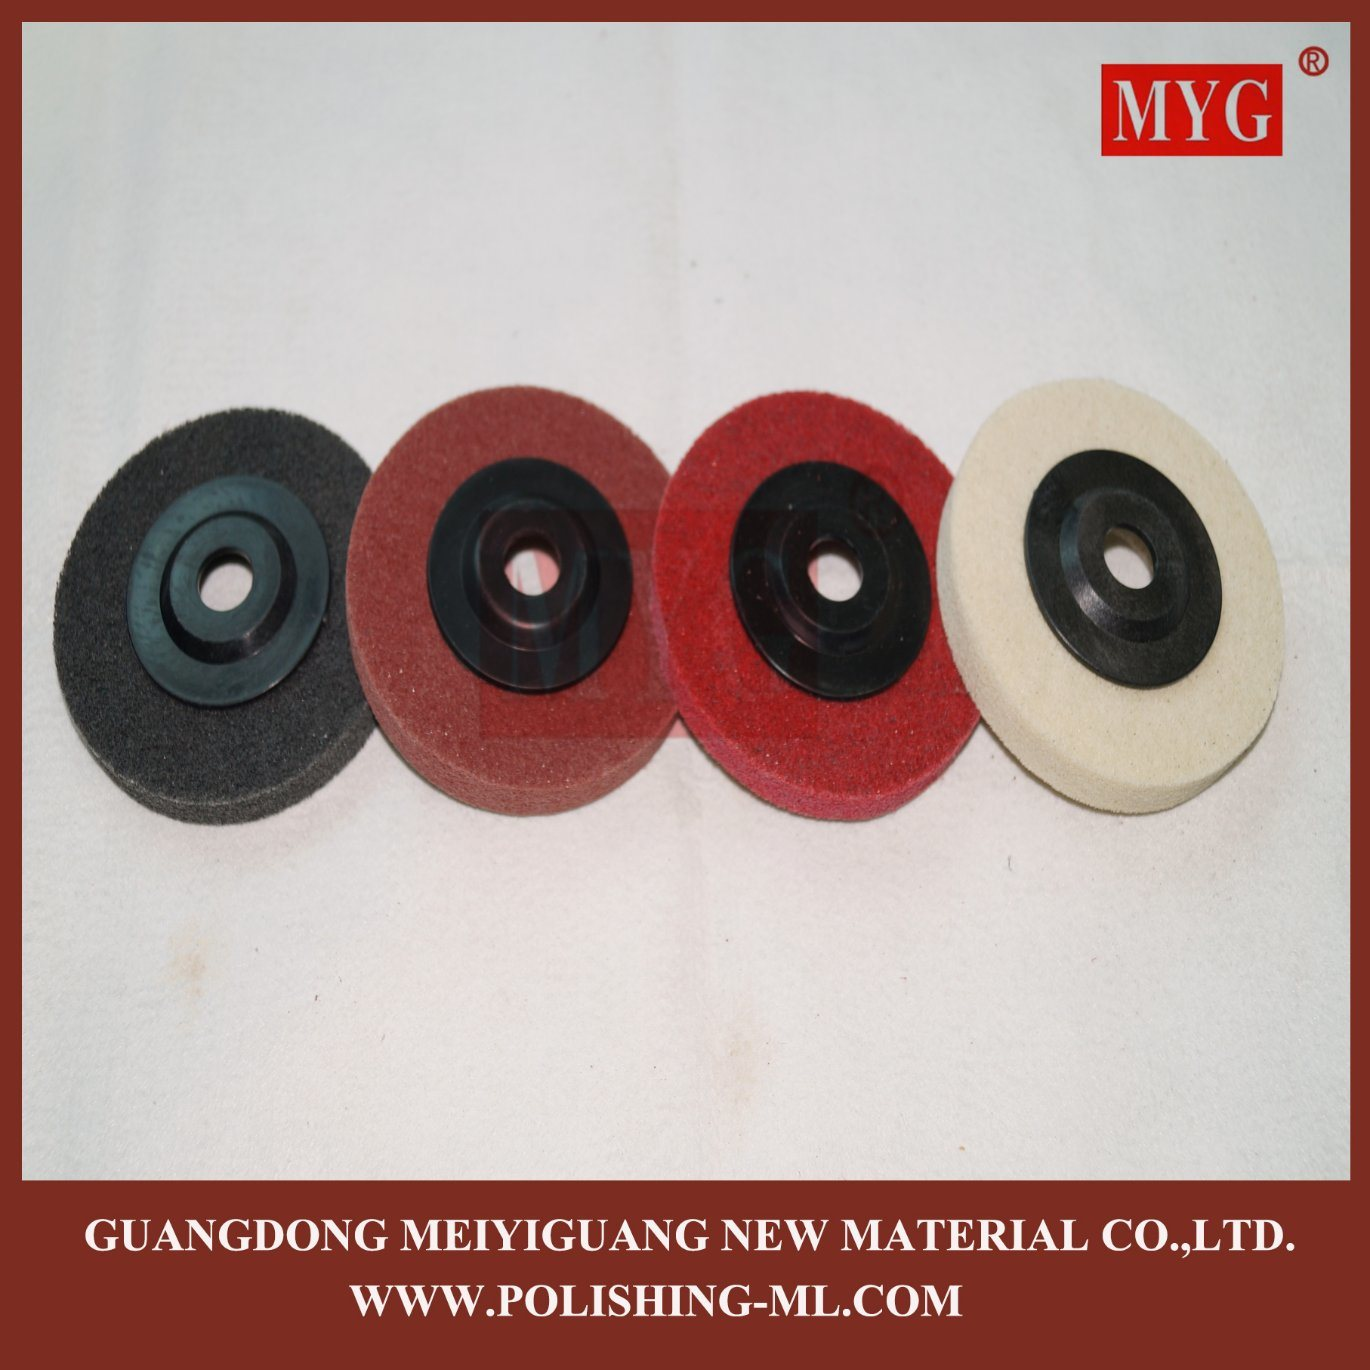 Bsa Plastic Cover Polishing Disc Manufacturer